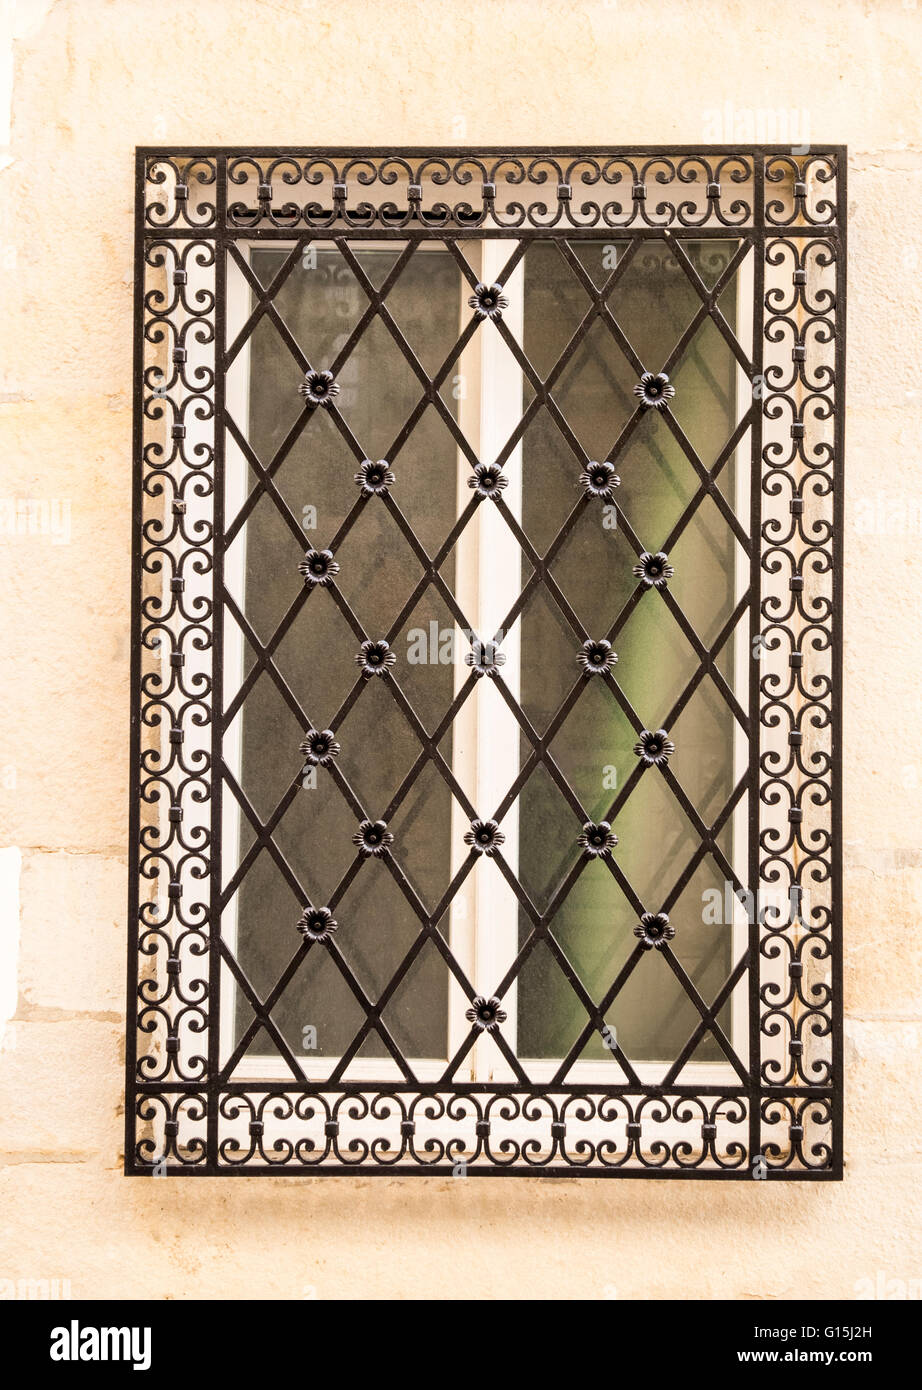 Decorative window grill stock photo  alamy